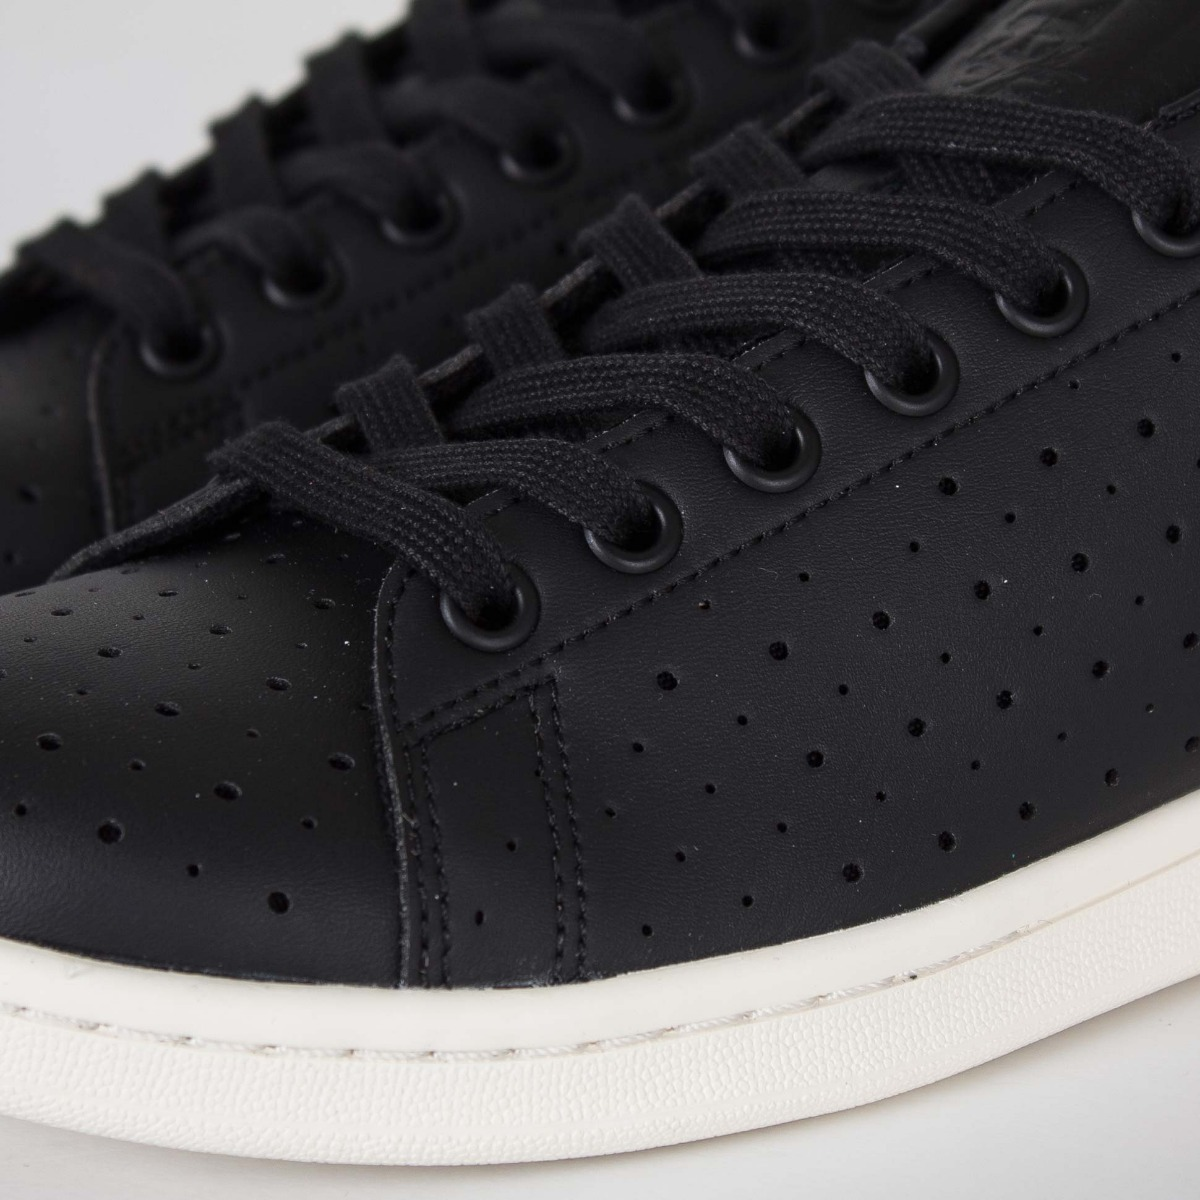 14fbf7a6465 Tennis adidas Stan Smith Nucleo Negras Perforated -   140.000 en ...